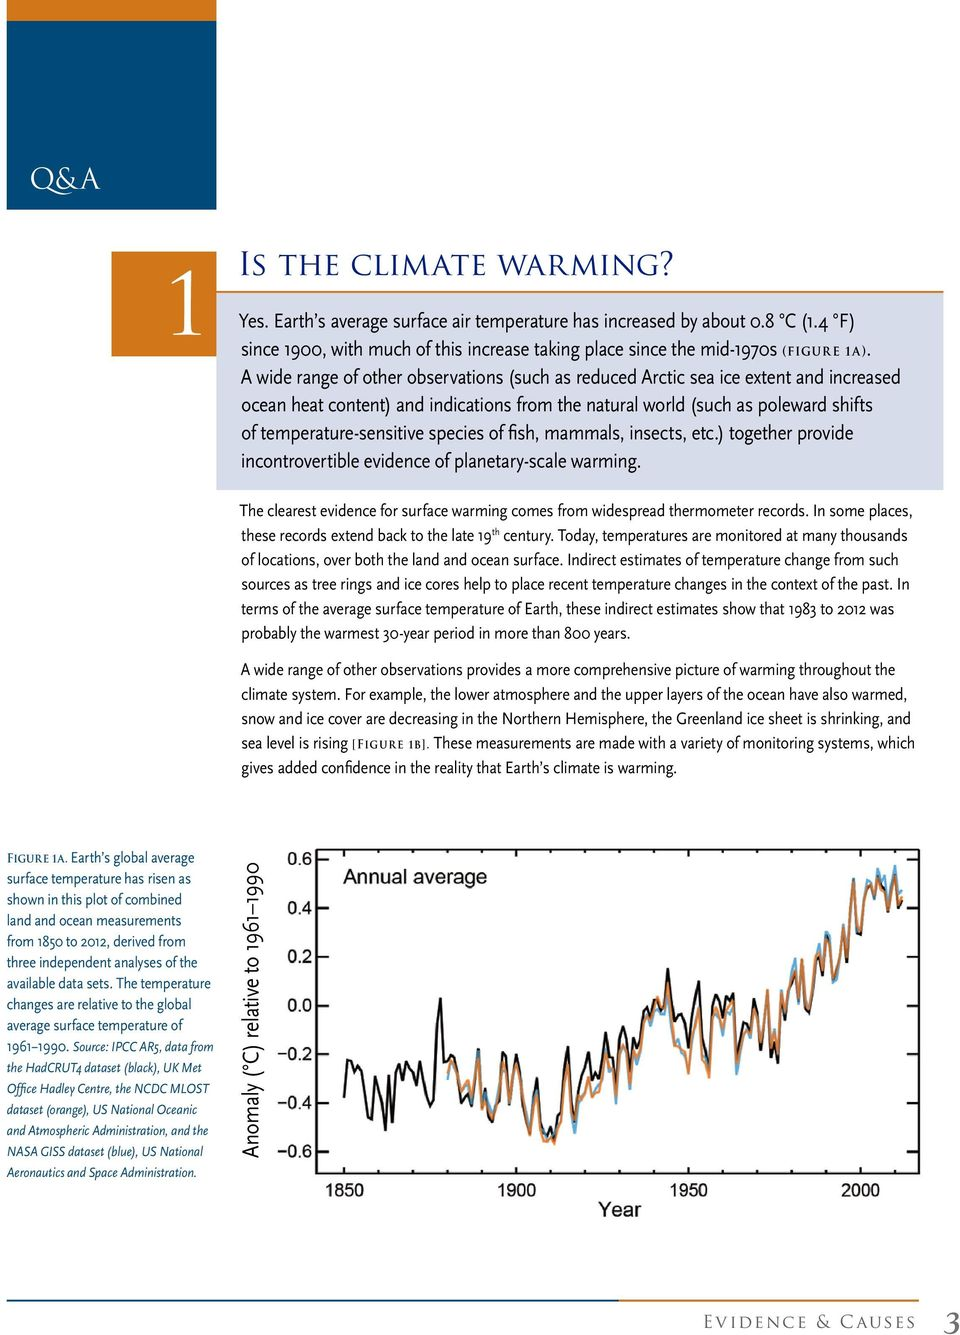 species of fish, mammals, insects, etc.) together provide incontrovertible evidence of planetary-scale warming. The clearest evidence for surface warming comes from widespread thermometer records.